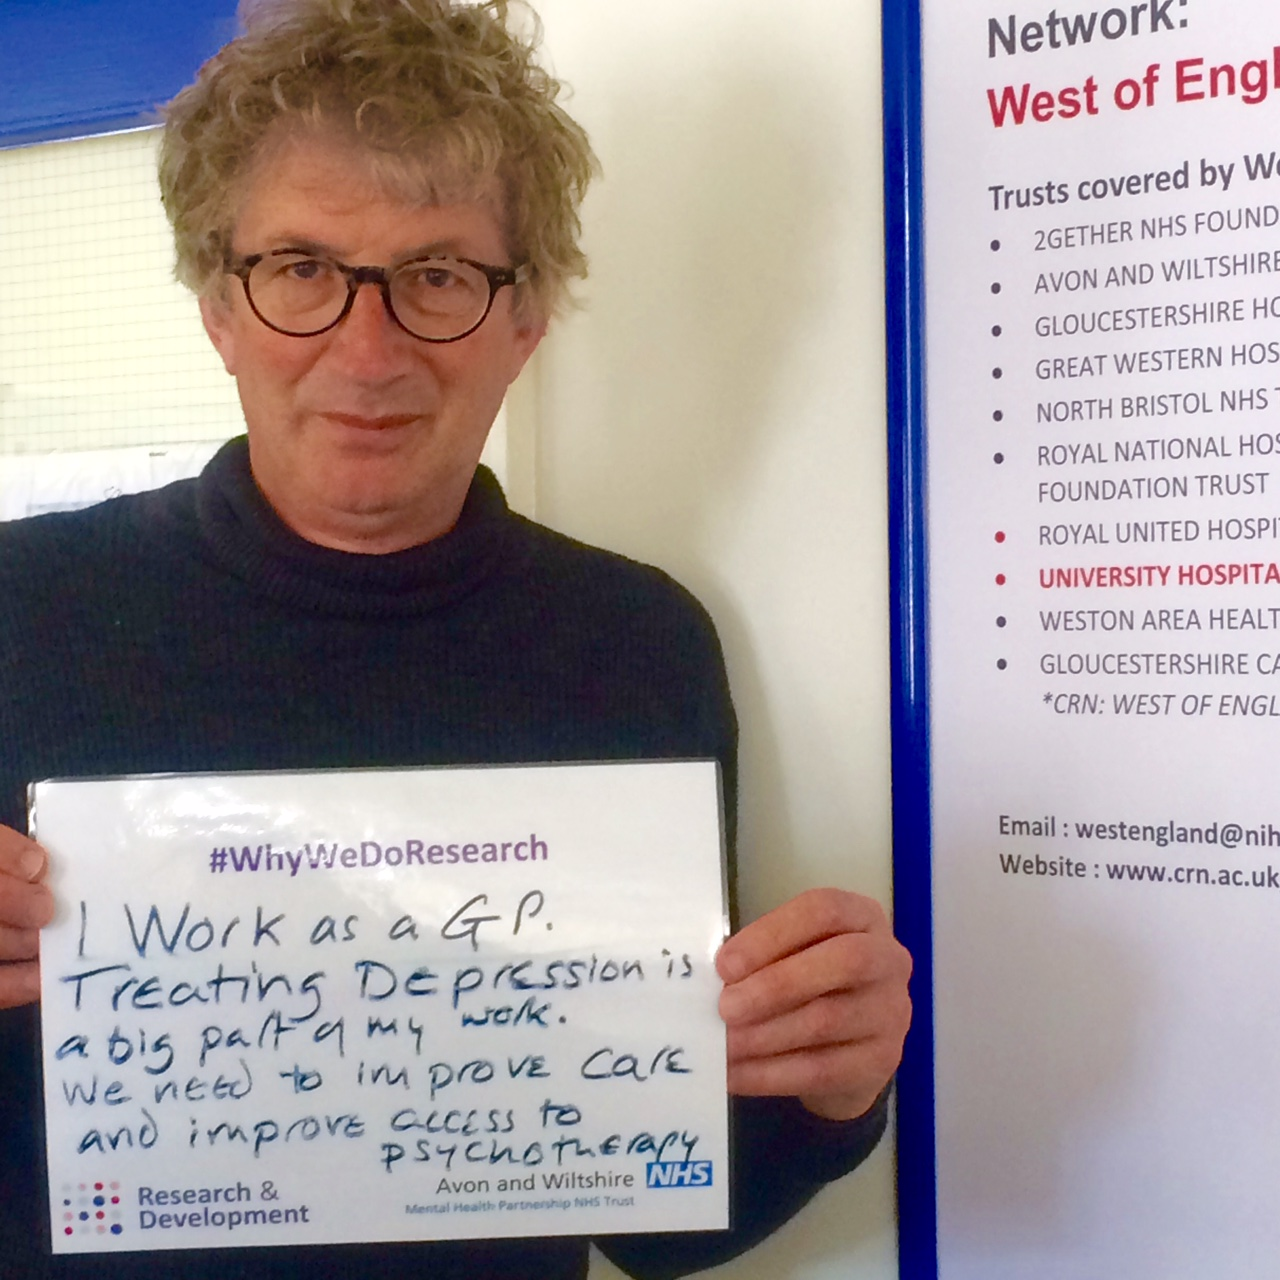 AWP celebrate #whywedoresearch during Clinical Trials Week